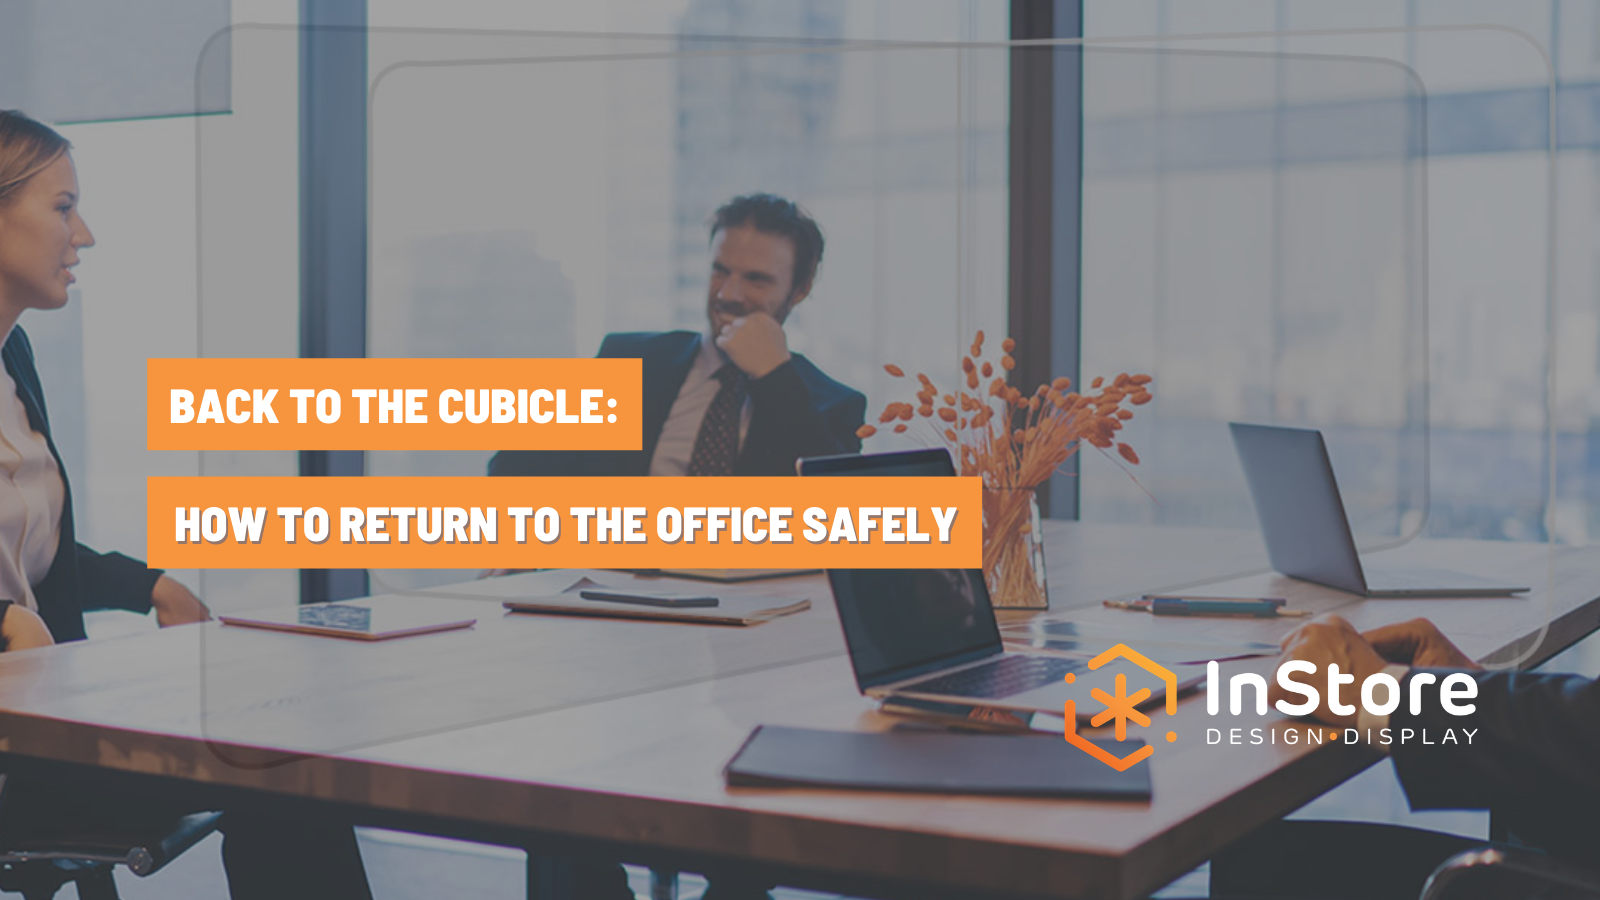 Back to the Cubicle: How to Return to Work Safely